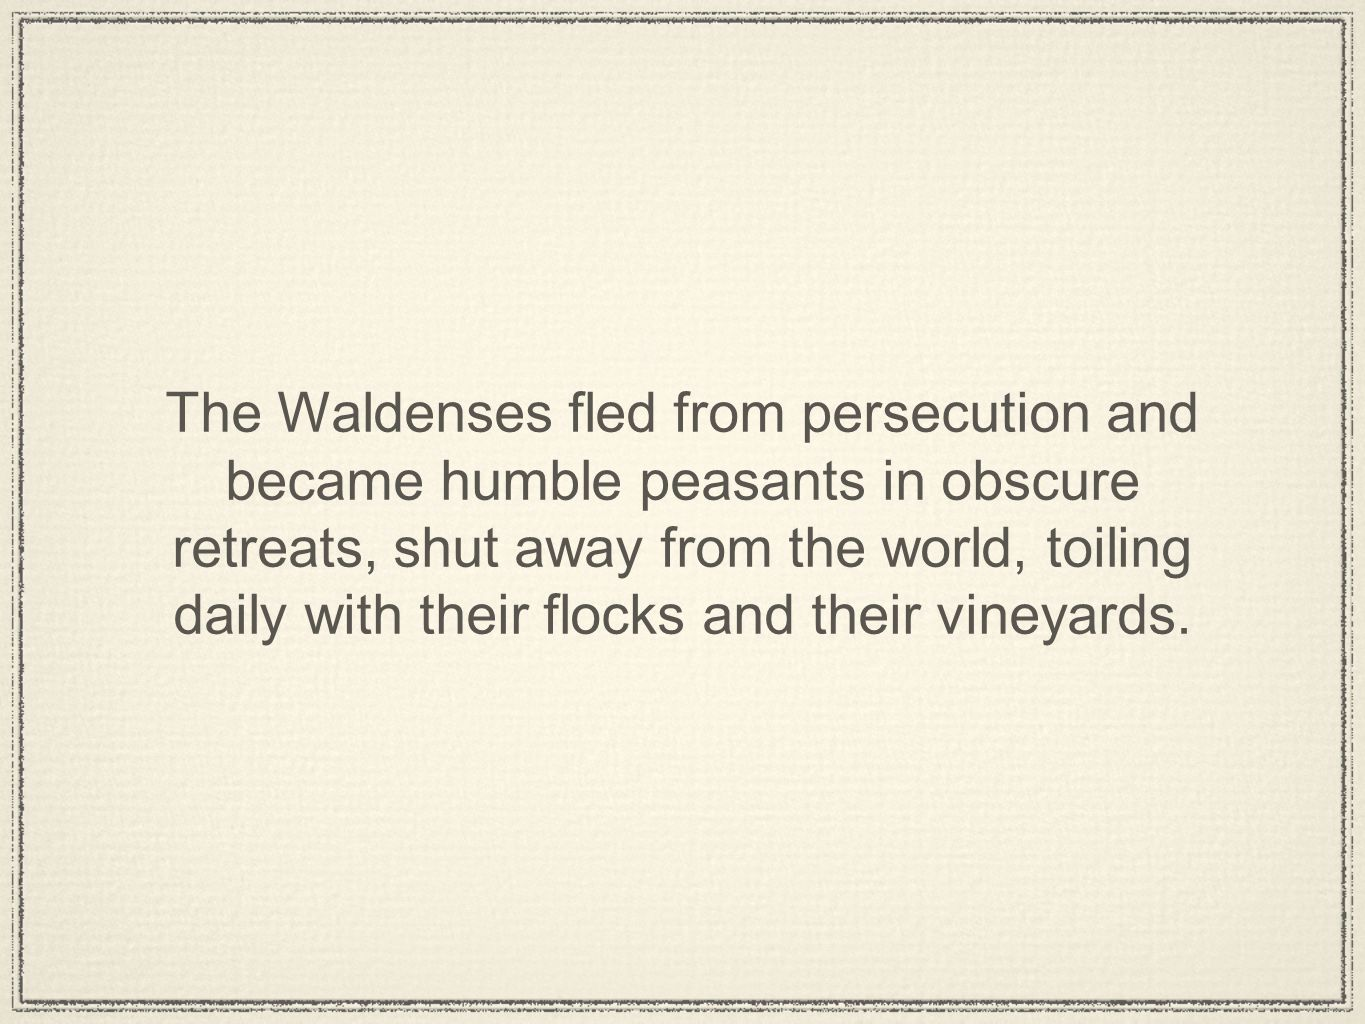 The Waldenses fled from persecution and became humble peasants in obscure retreats, shut away from the world, toiling daily with their flocks and their vineyards.